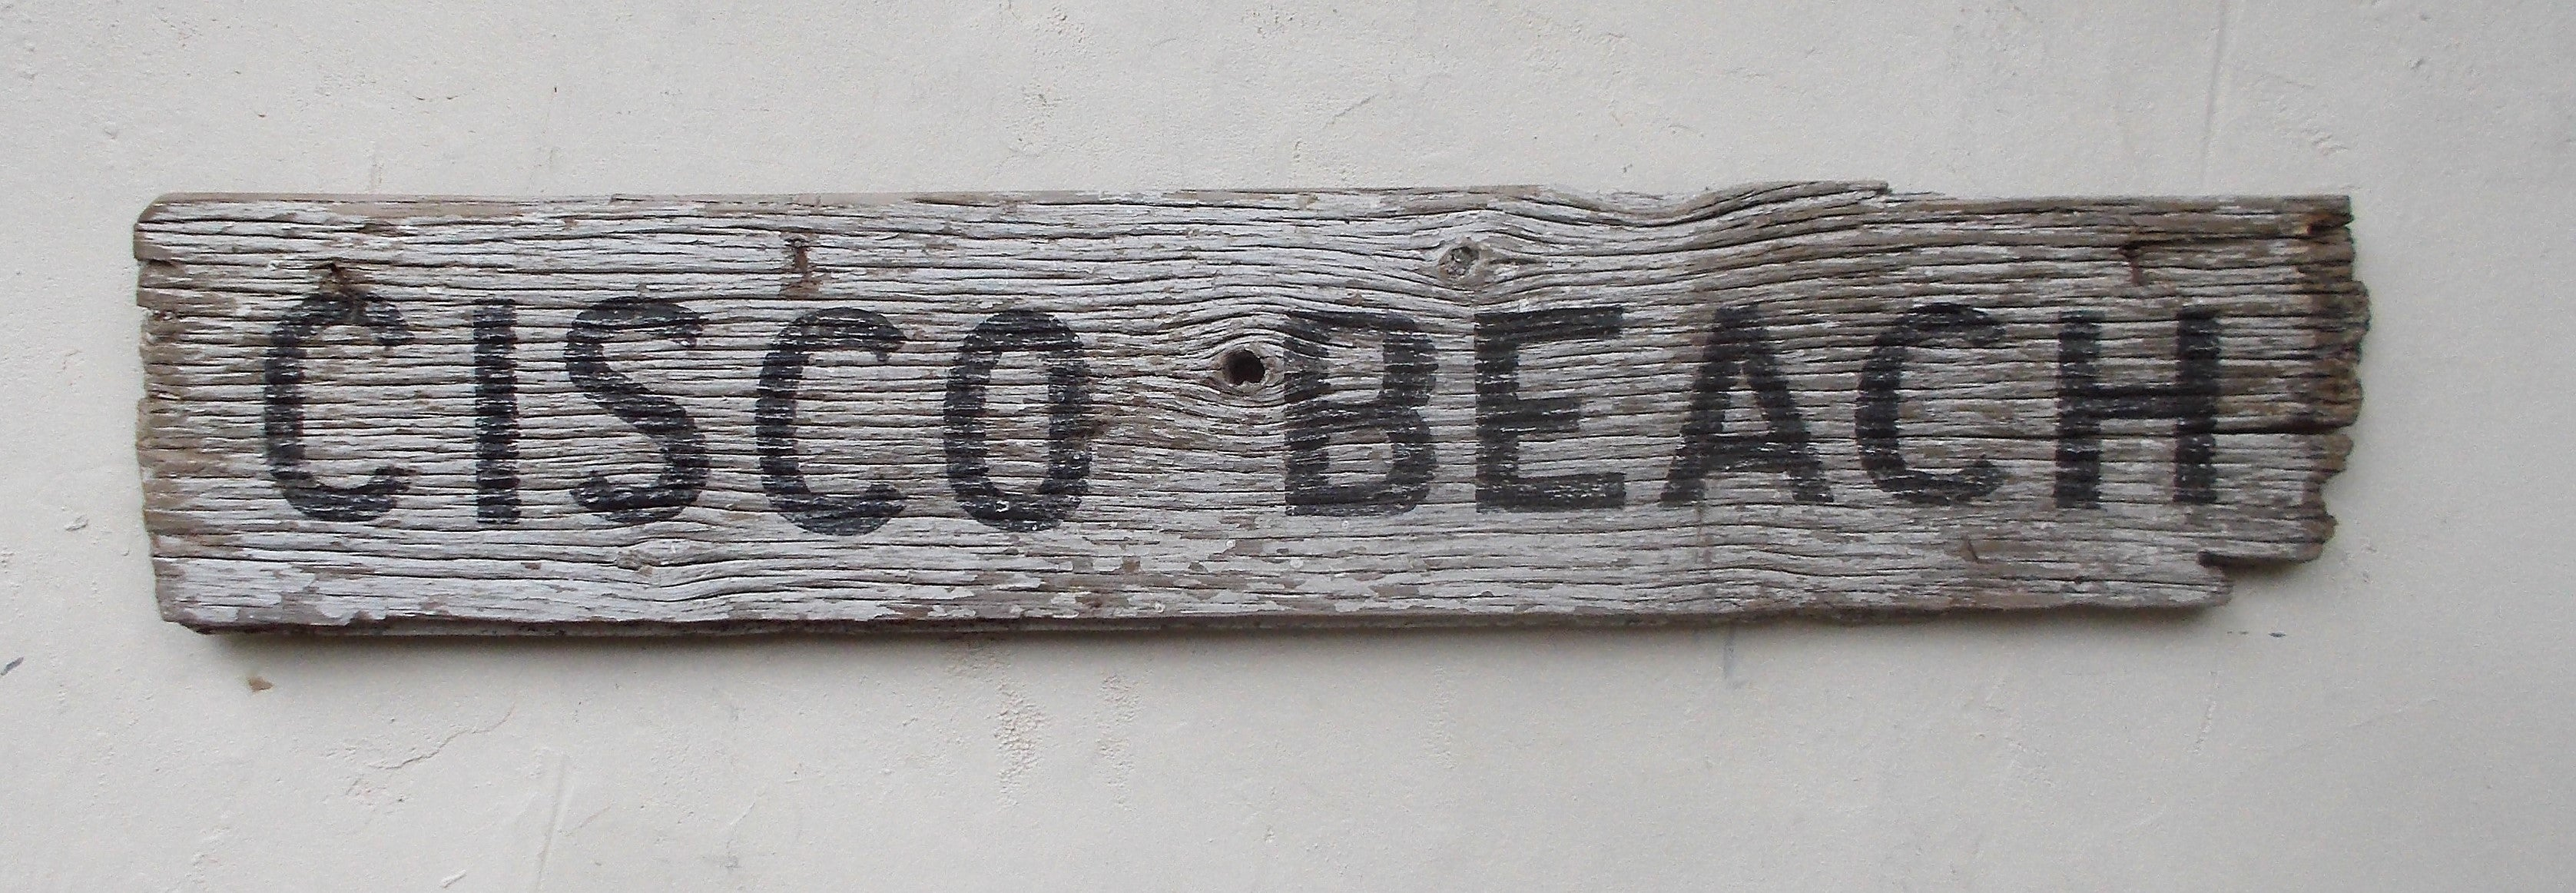 Cisco Beach sign